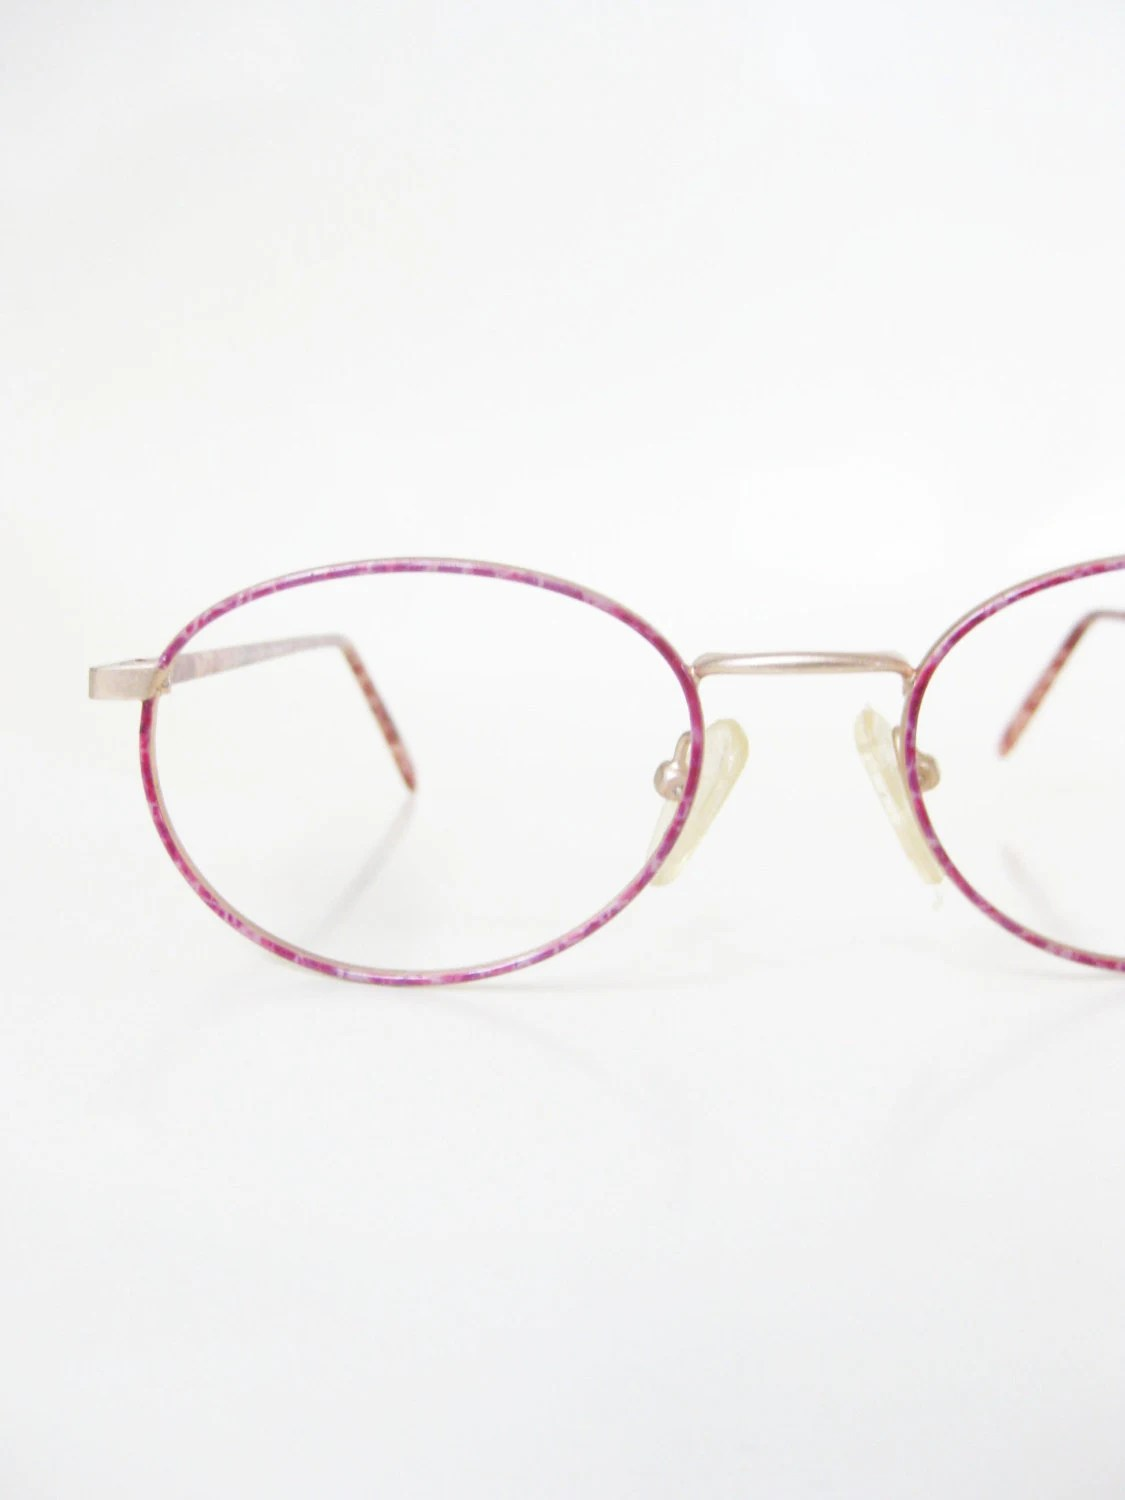 Vintage 1980s Pink Wire Rim Eyeglasses Glasses Reading Mauve